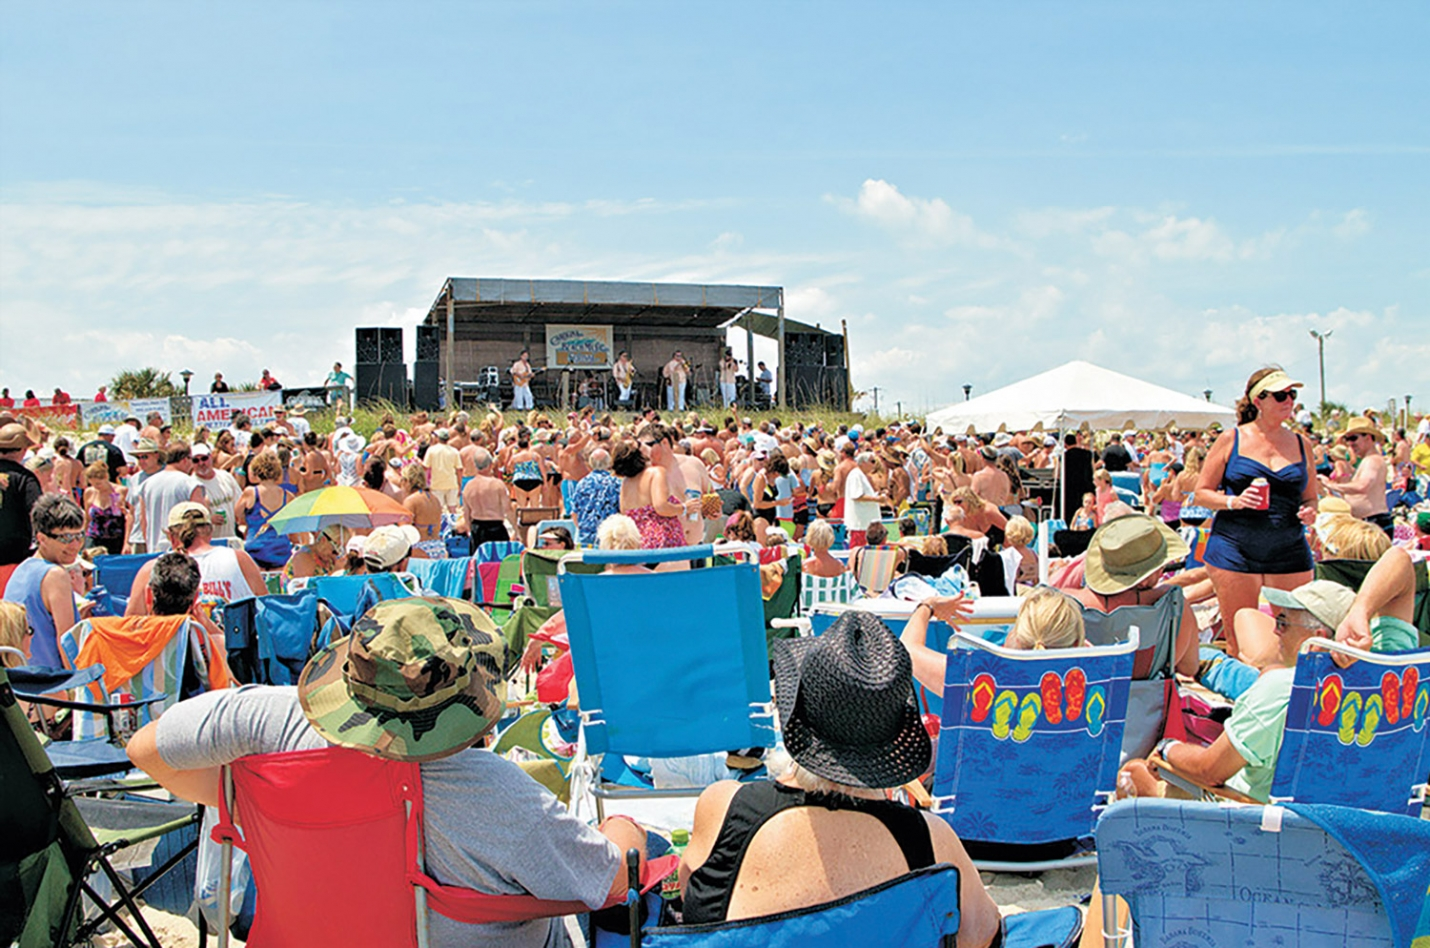 The 33rd Annual Carolina Beach Music Festival will take place on the beach front at the Boardwalk on Saturday June 2nd featuring Band of Oz, Black Water Rythm & Blues Band and Jim Quick and Coastline. Tickets to one of the longest running beach music festivals in the United States are $25 in advance and $30 at the gate. Visit http://www.pleasureislandnc.org/ for more info and ticket sales.